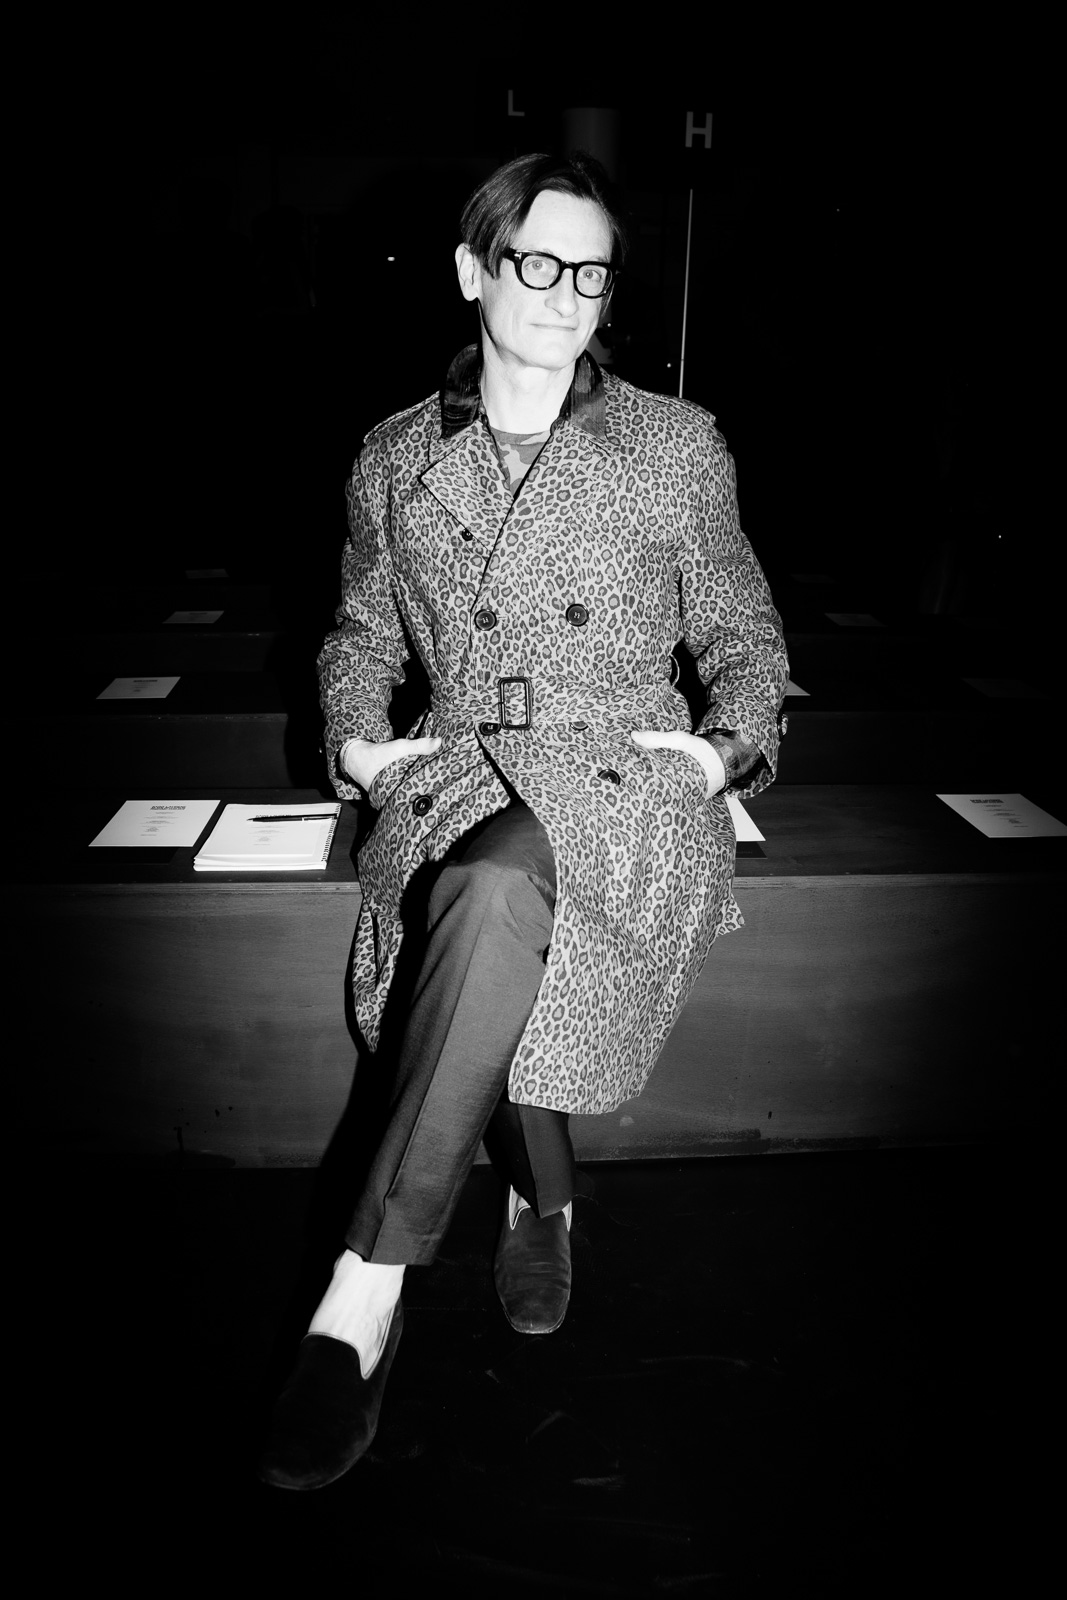 International Vogue Editor at Large Hamish Bowles at Saint Laurent FW16 (Hedi Slimane) at the Palladium on February 10, 2016 in Los Angeles, California.